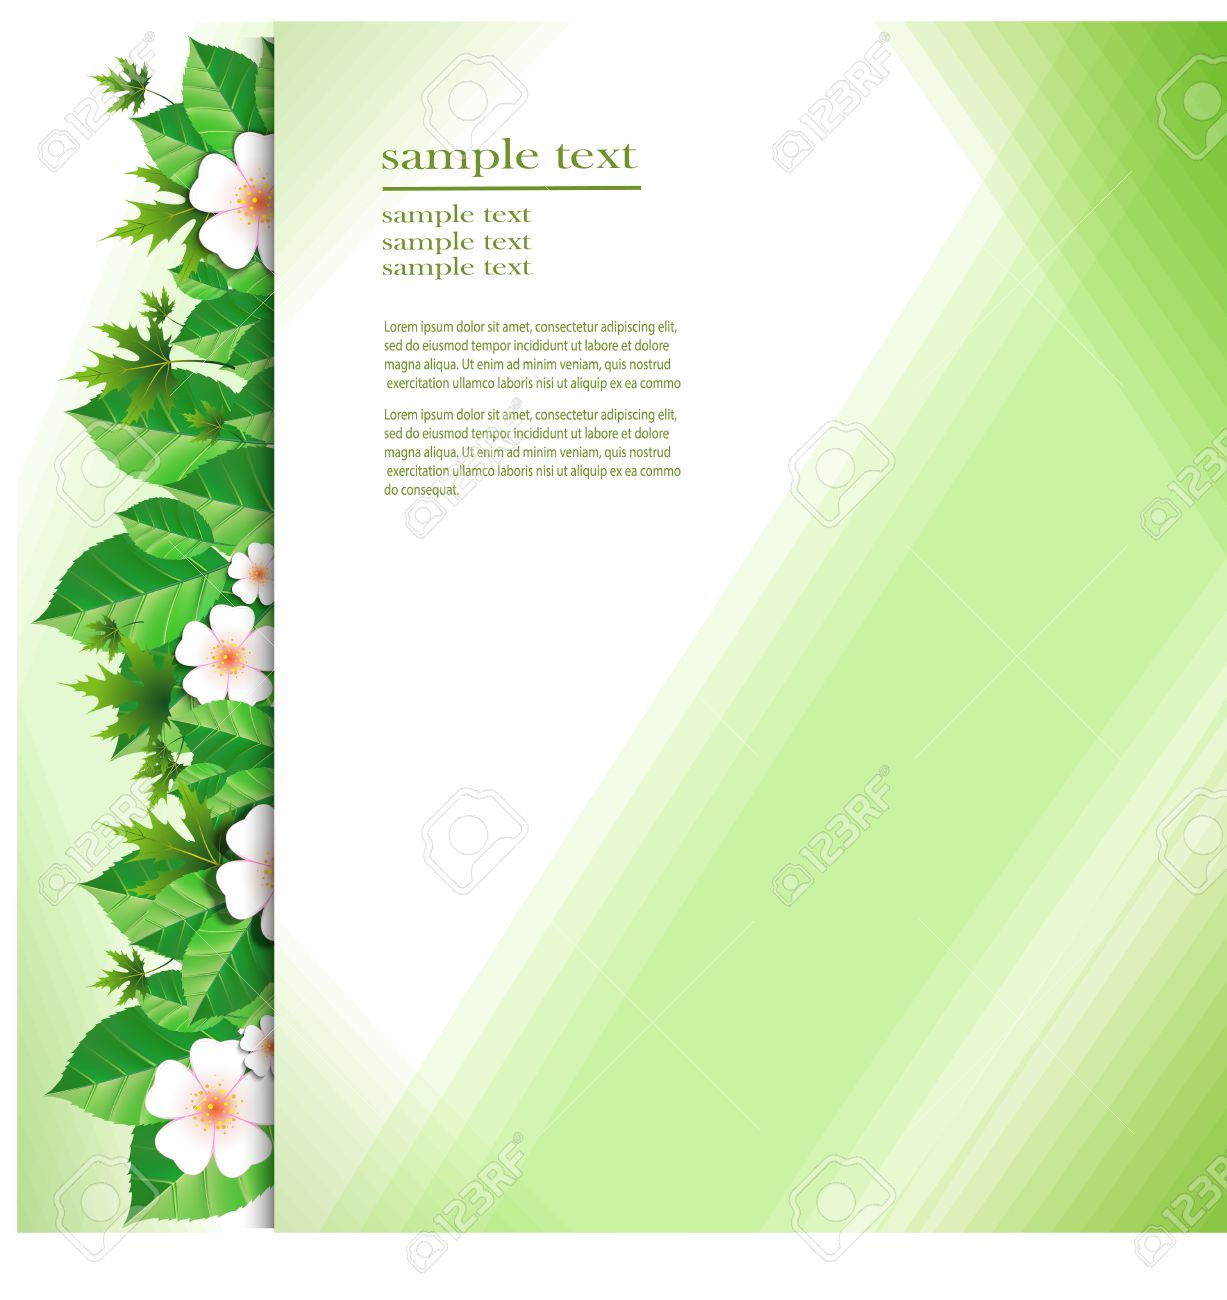 V card background images - Green Flower Background Greeting Card Abstract Floral Design In White Green And Light